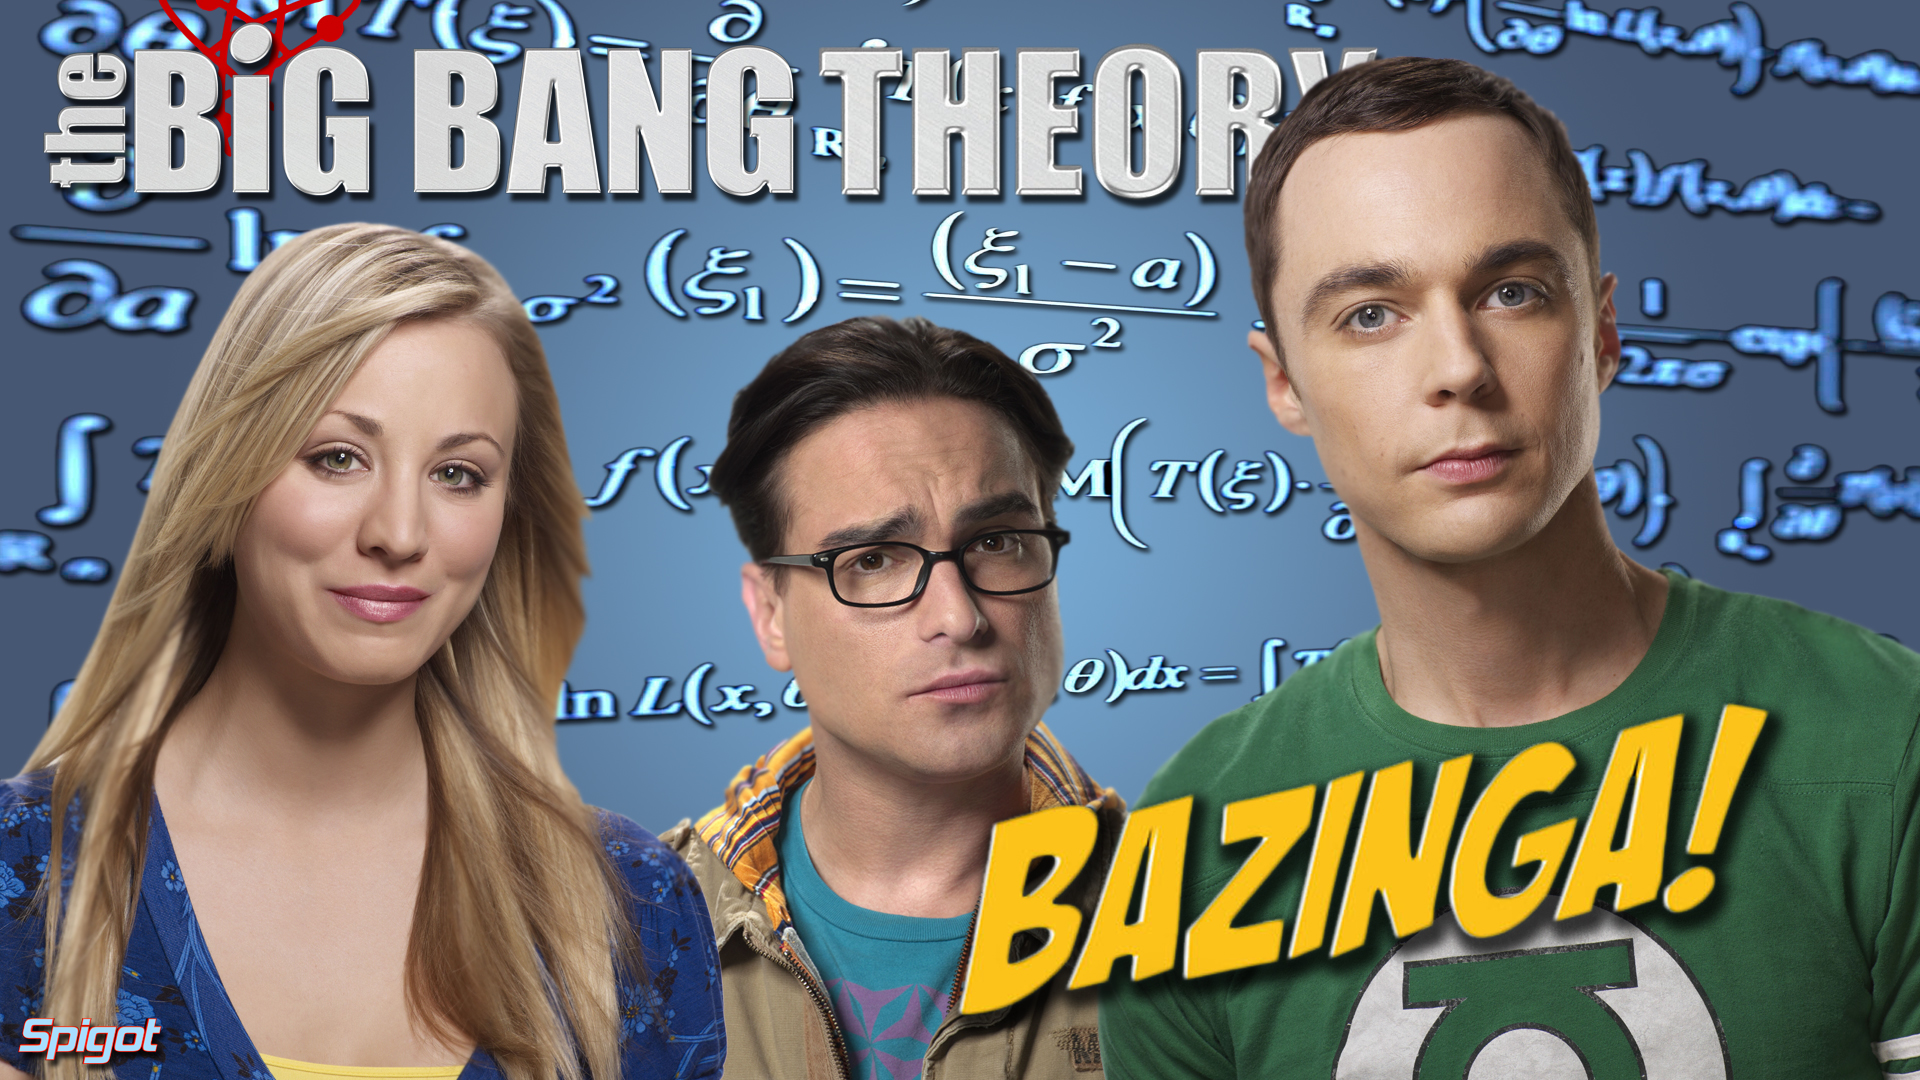 Big Bang Theory wallpaper  627441